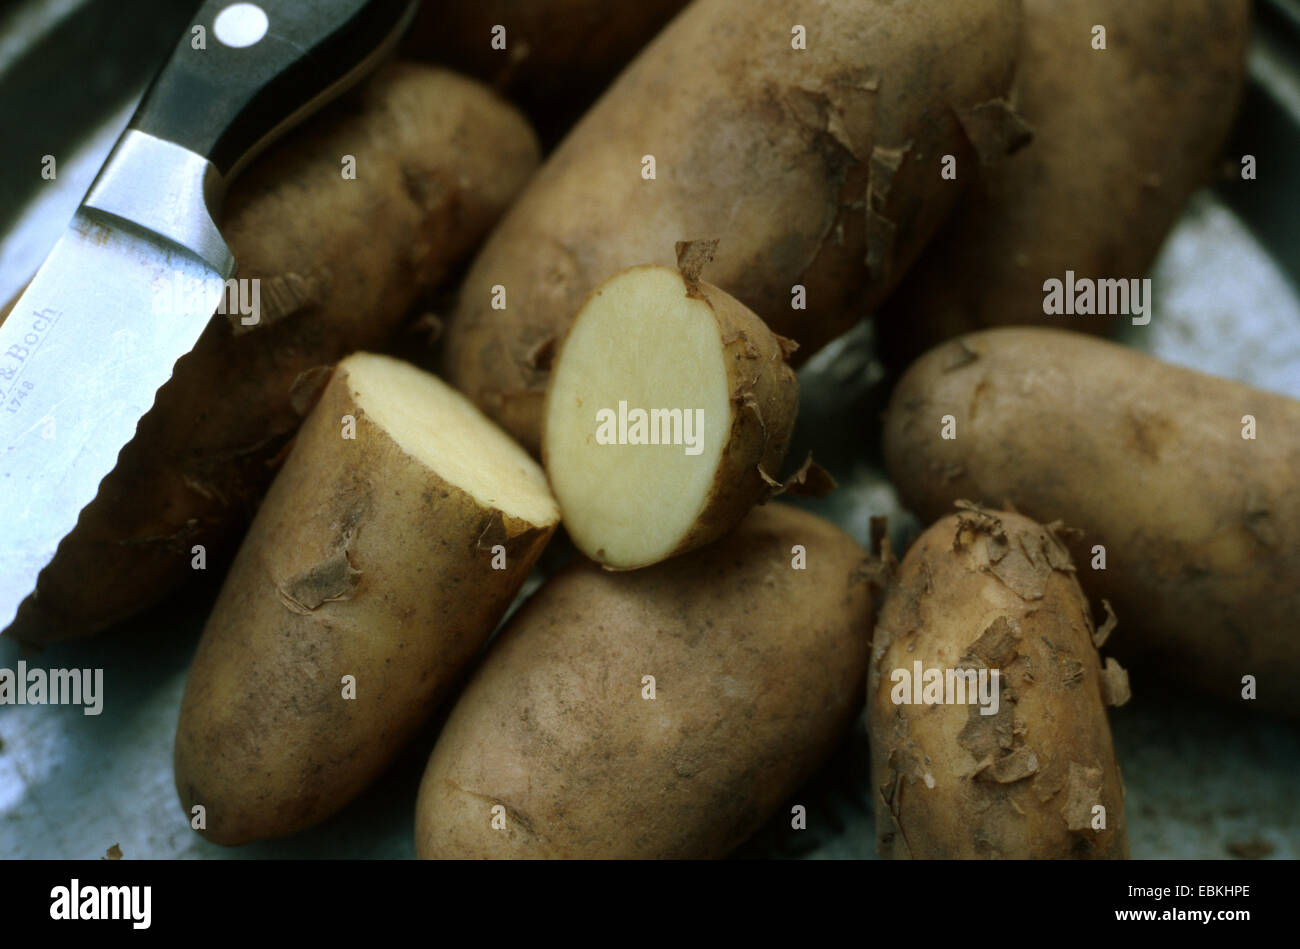 potato (Solanum tuberosum Annabelle), some tubers of the waxy cultivar Annabelle, some cut Stock Photo